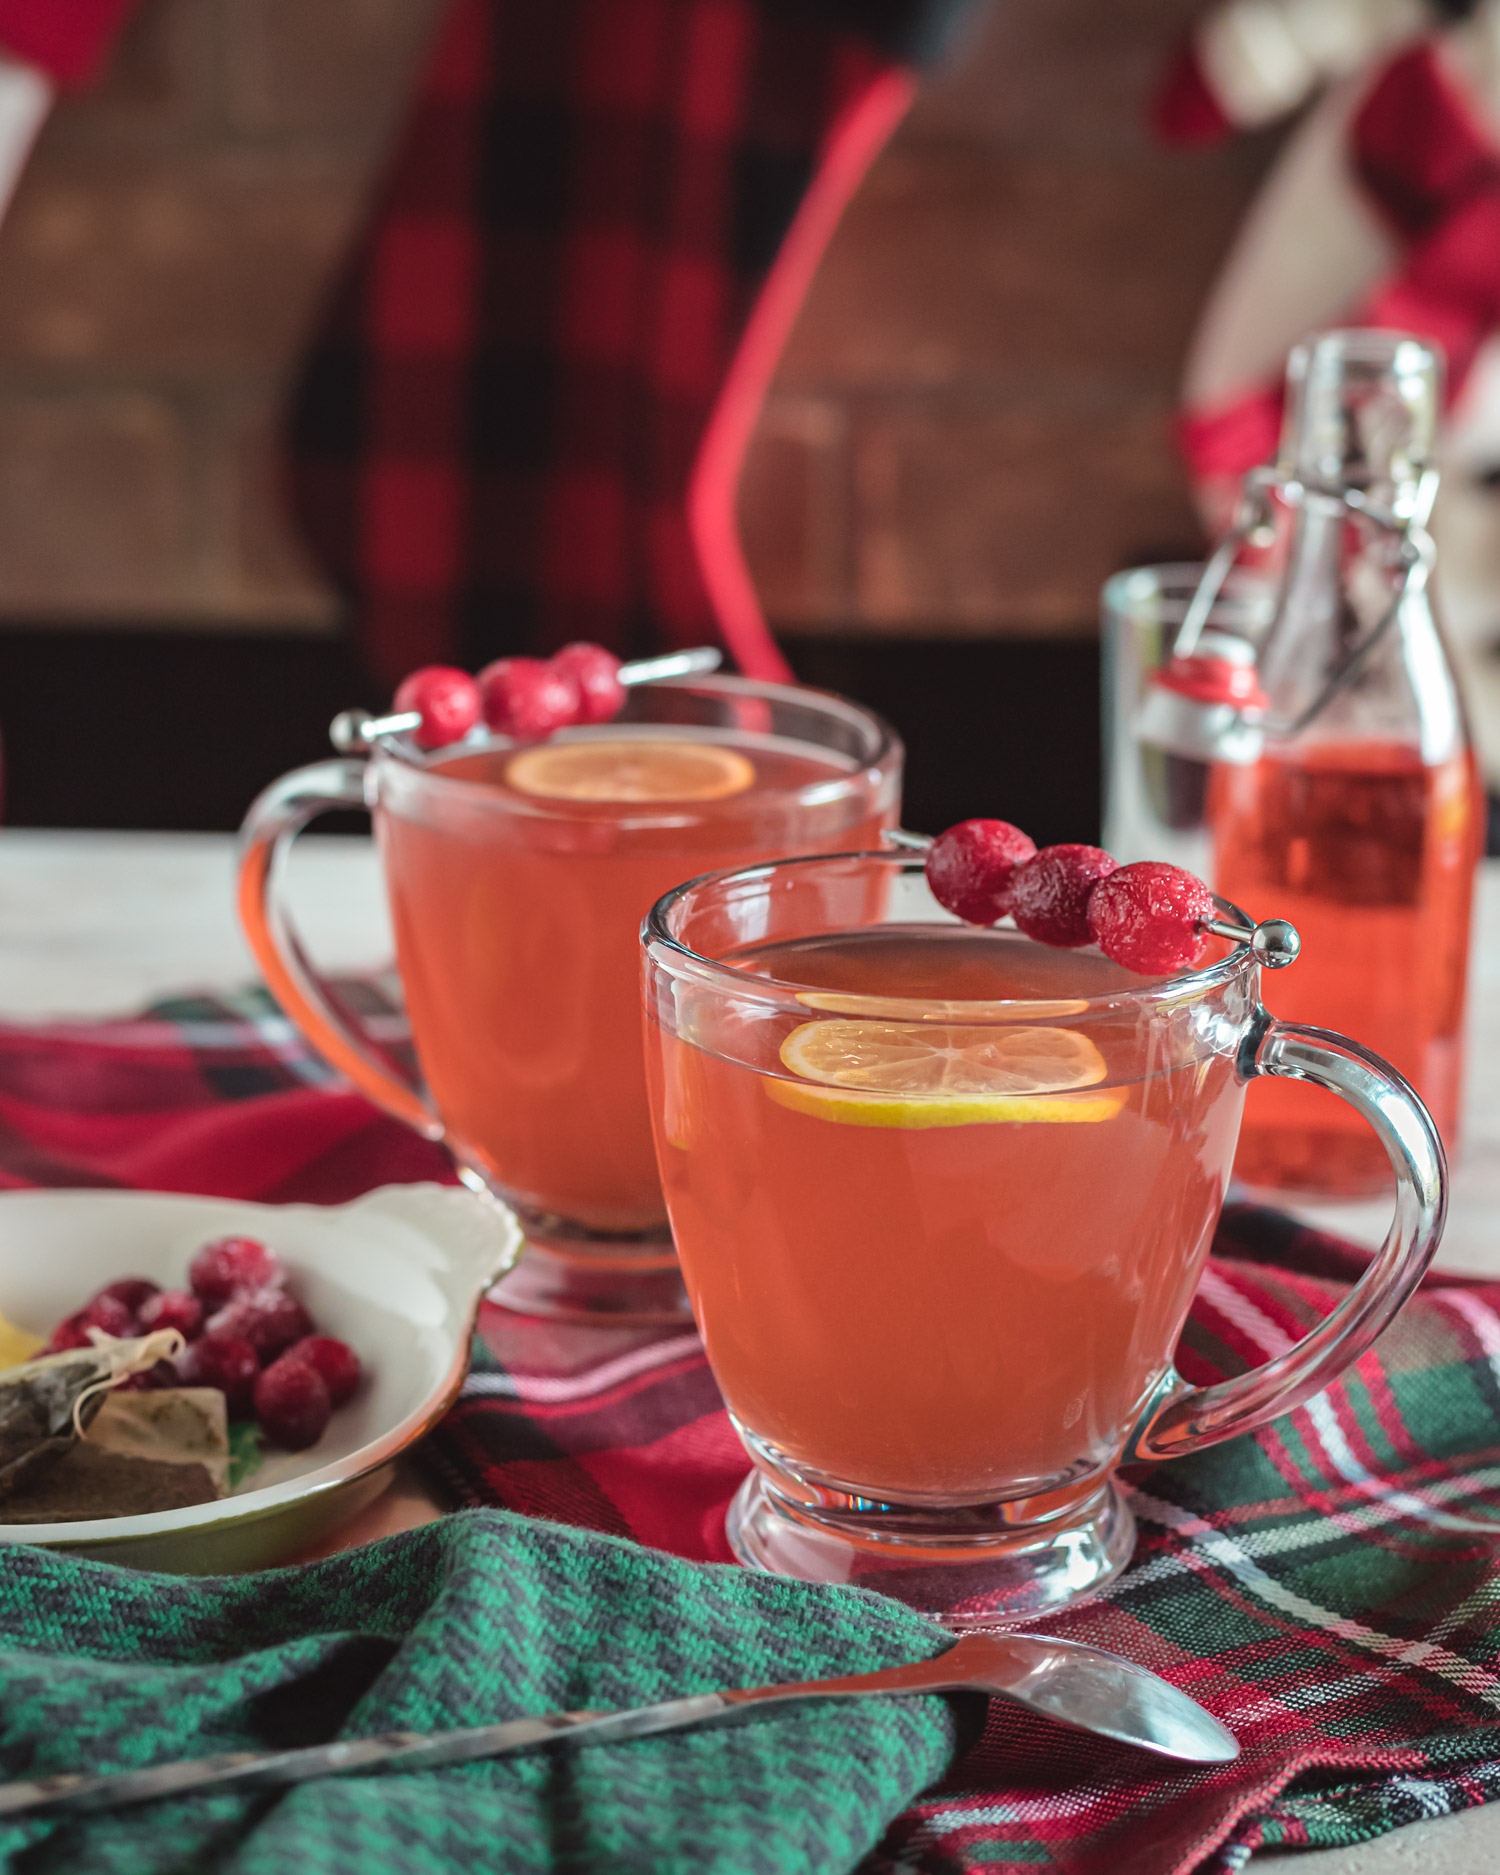 Cranberry Mint Tea Cocktail is a mint tea cocktail made with cranberry vodka, lemon juice, and simple syrup. It's the perfect winter hot cocktail recipe. Elle Talk #cocktailrecipe #drinkrecipe #tearecipe